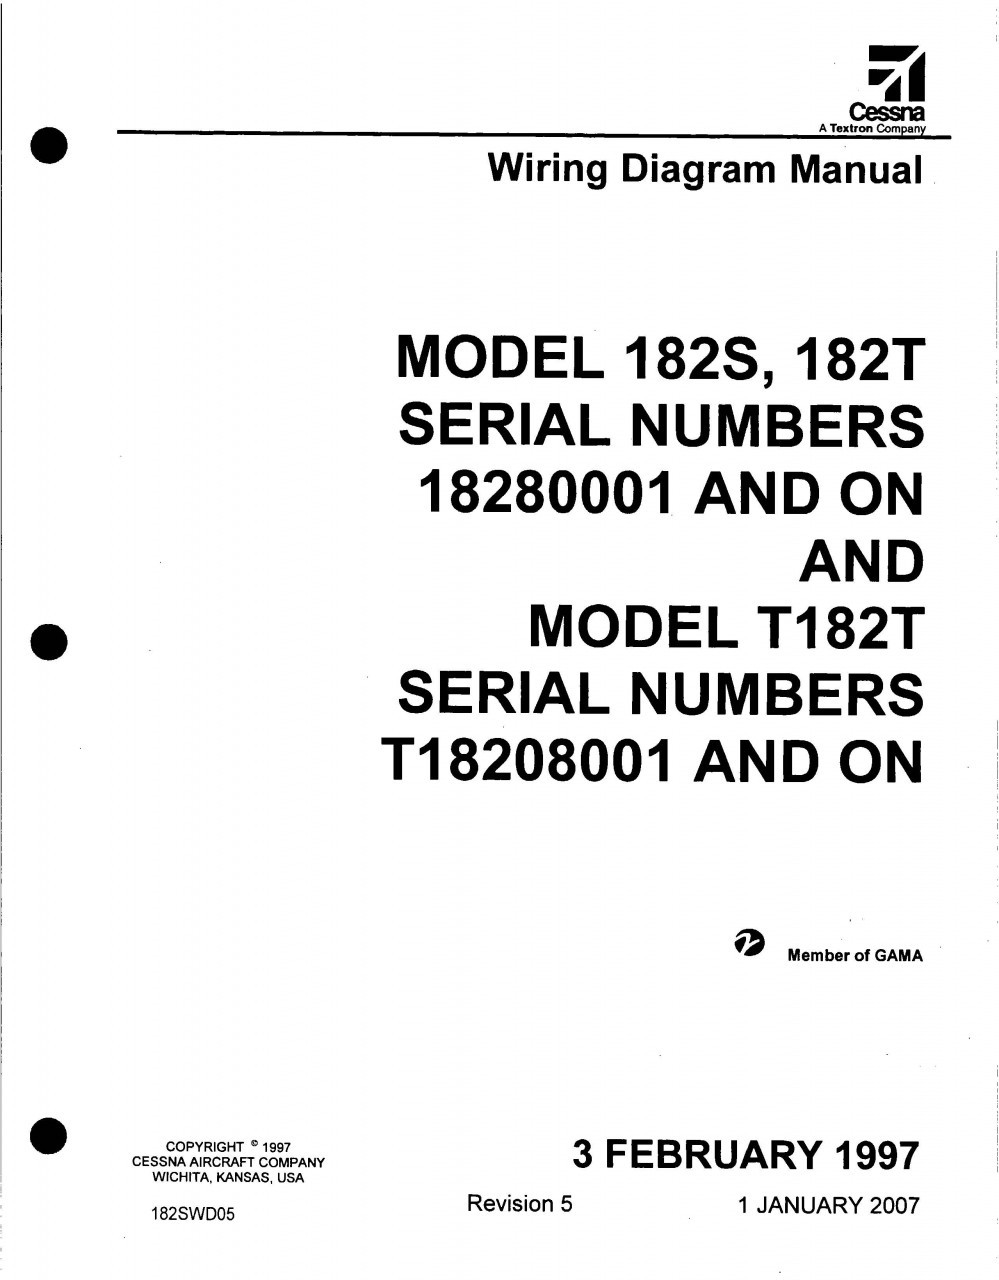 hight resolution of cessna 182 wiring diagram electrical manual 182s 182t 182swd download alternator electrical diagram cessna 150 electrical